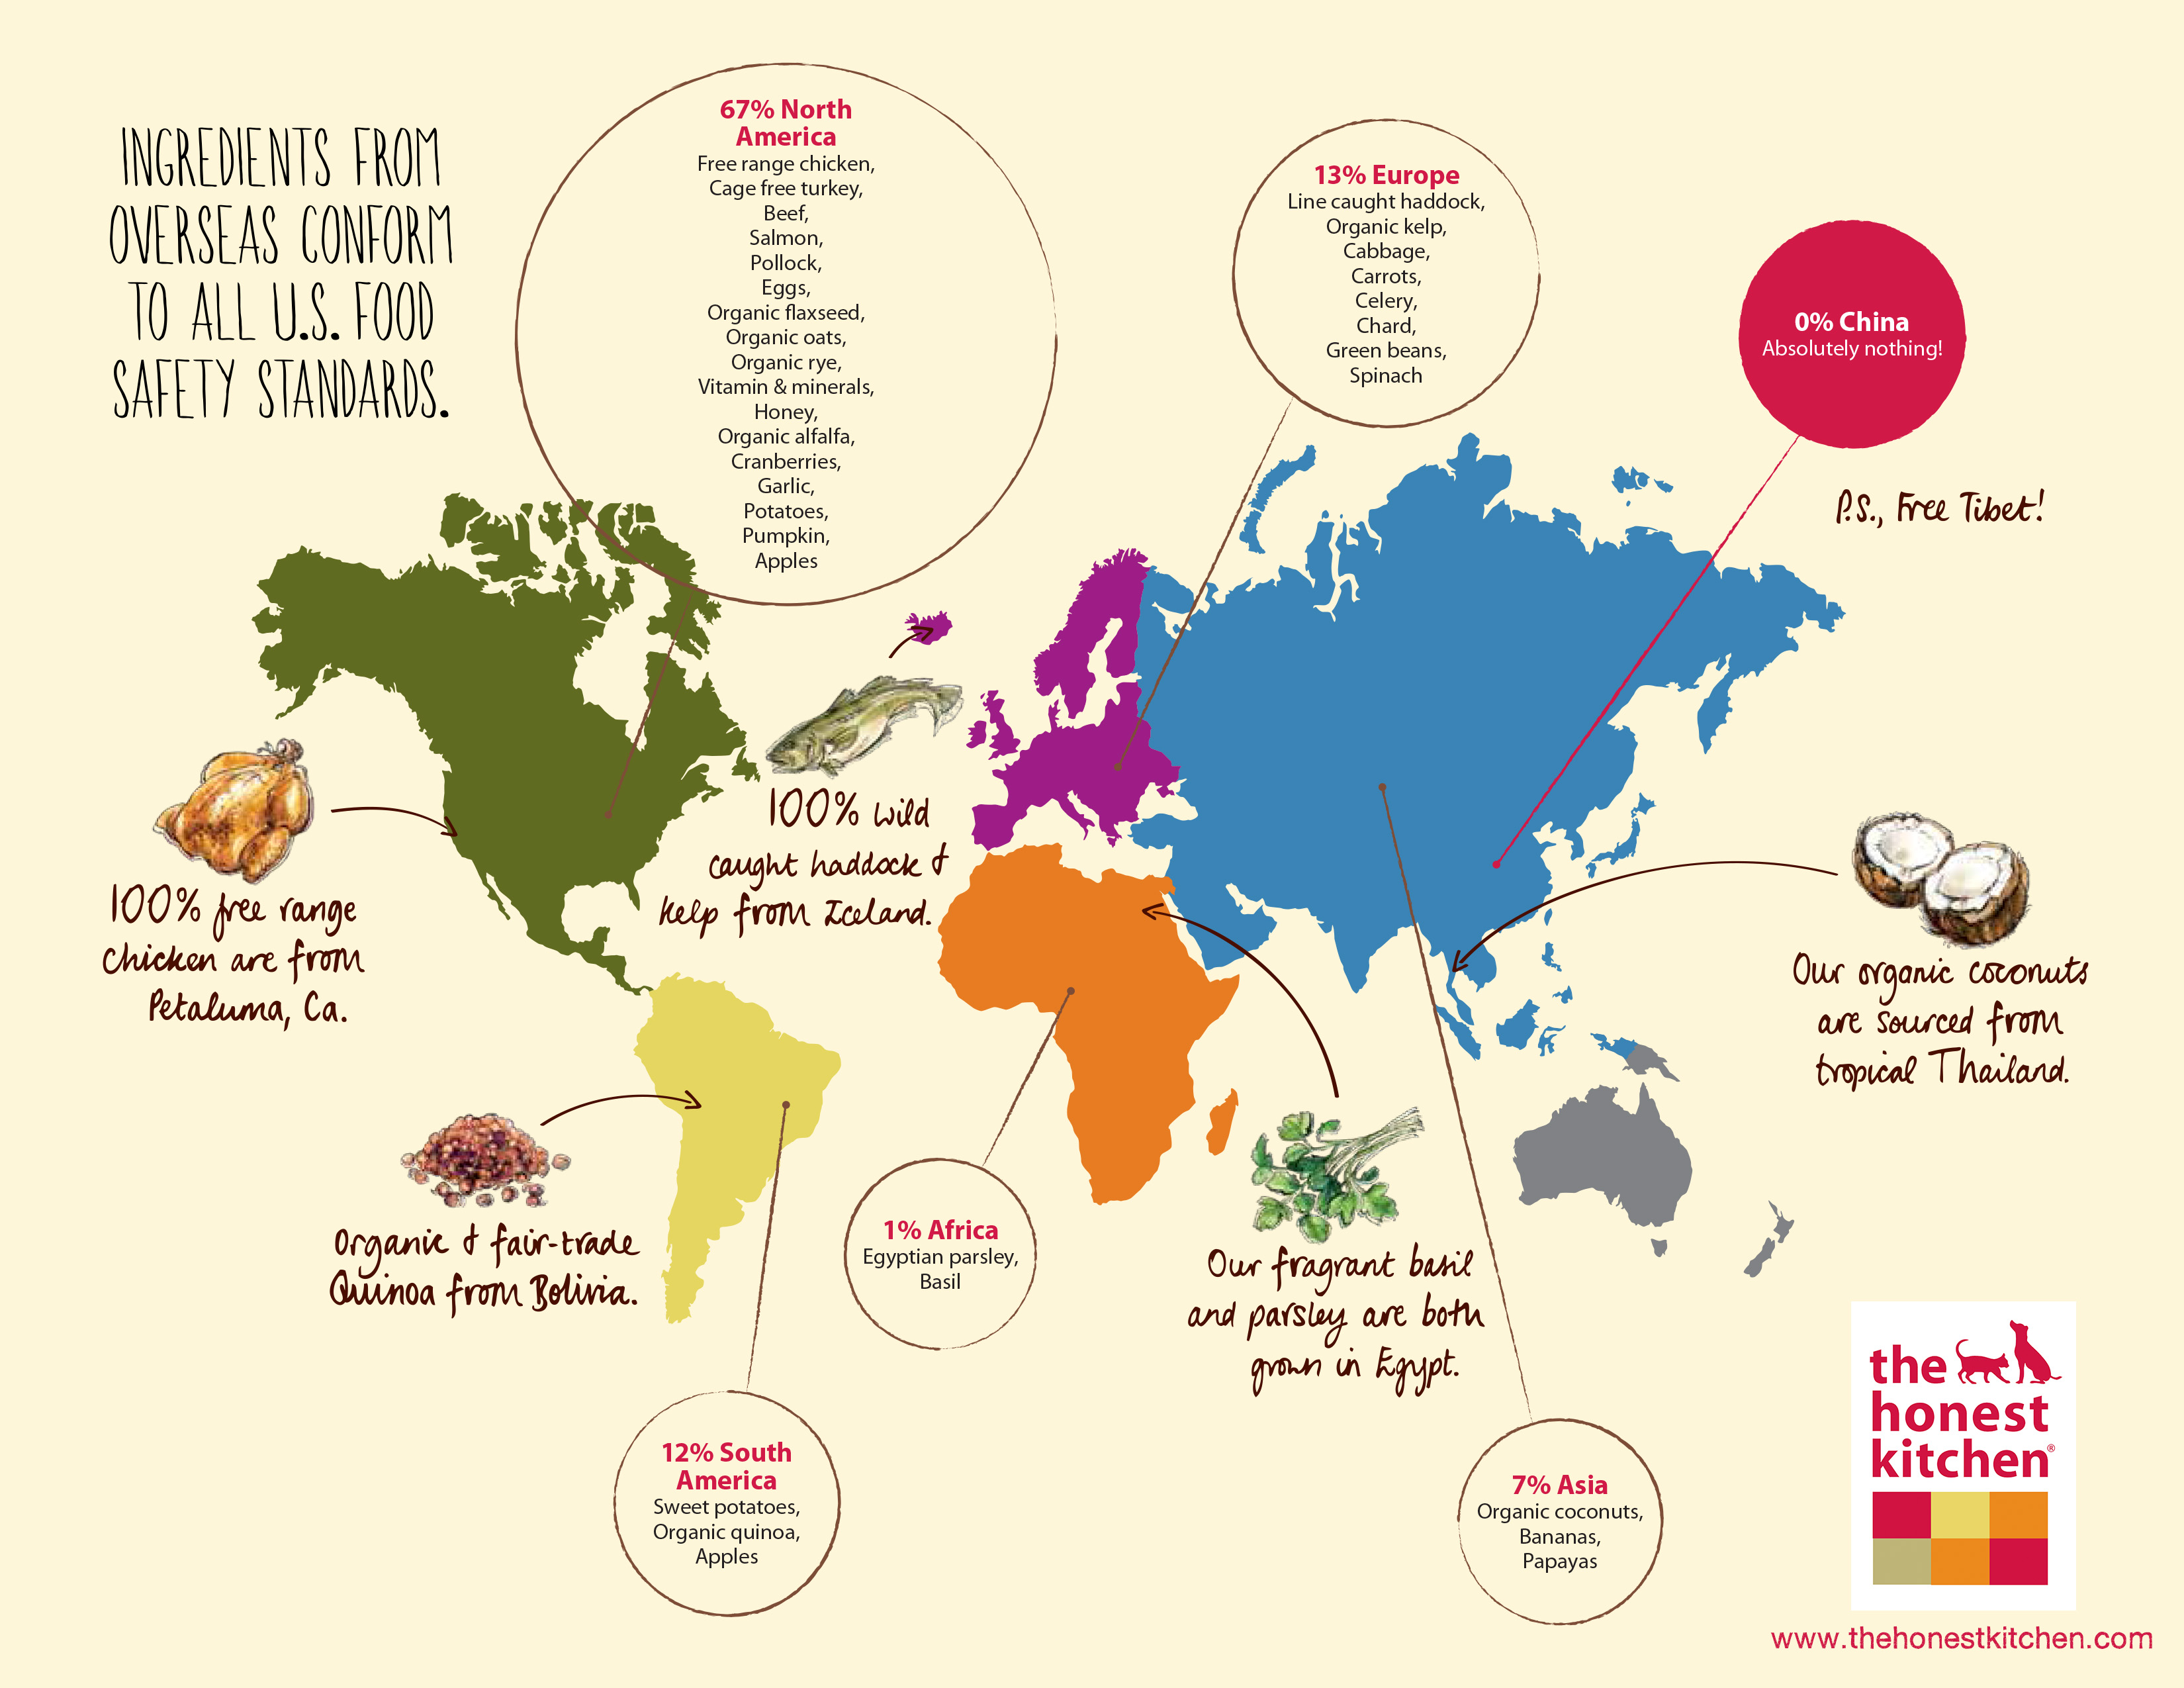 Honest Kitchen Is Clear About Where All Their Ingredients Are From, Even If  Internationally Sourced